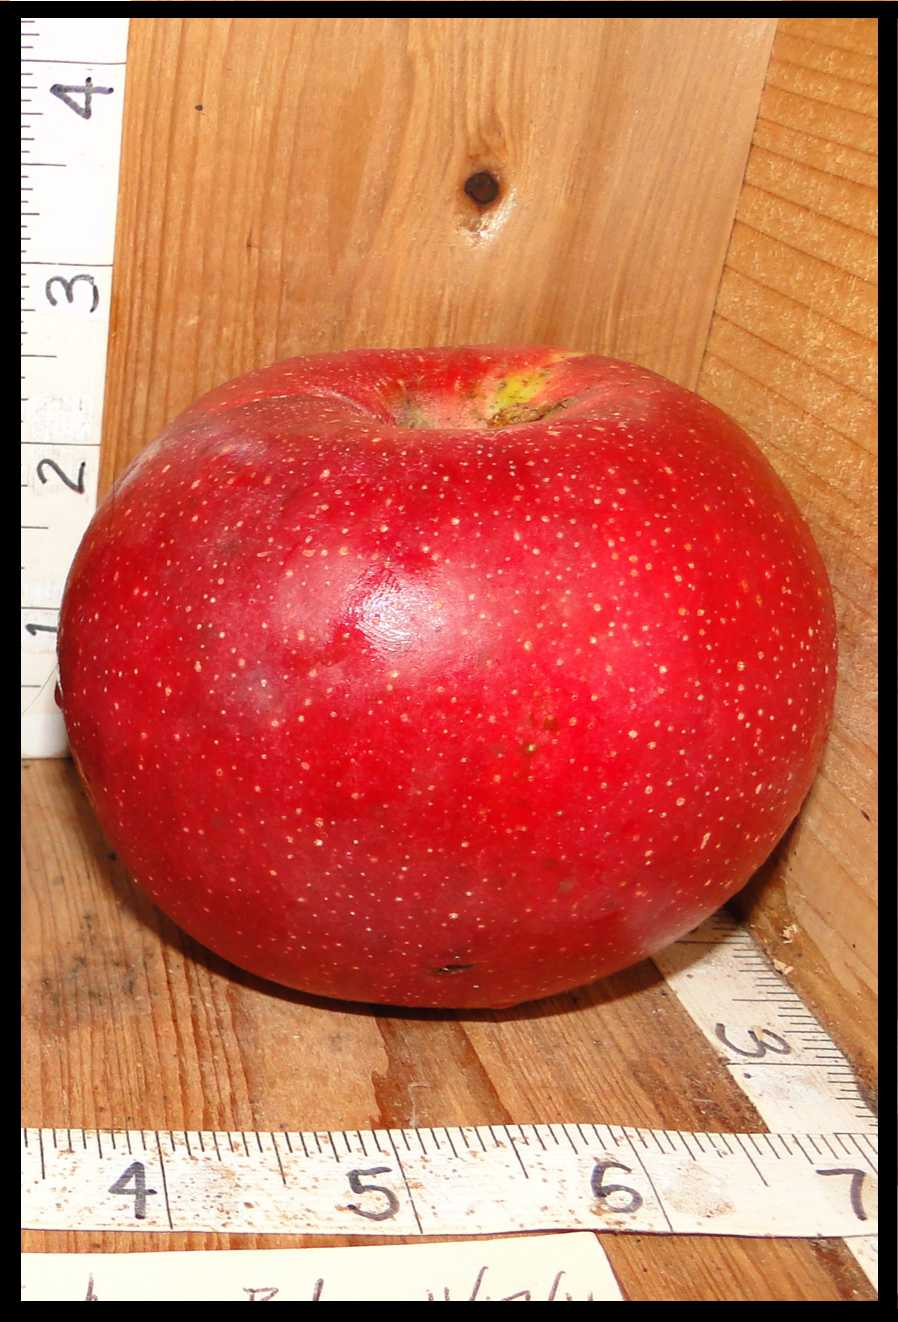 red apple with numerous tiny white dots